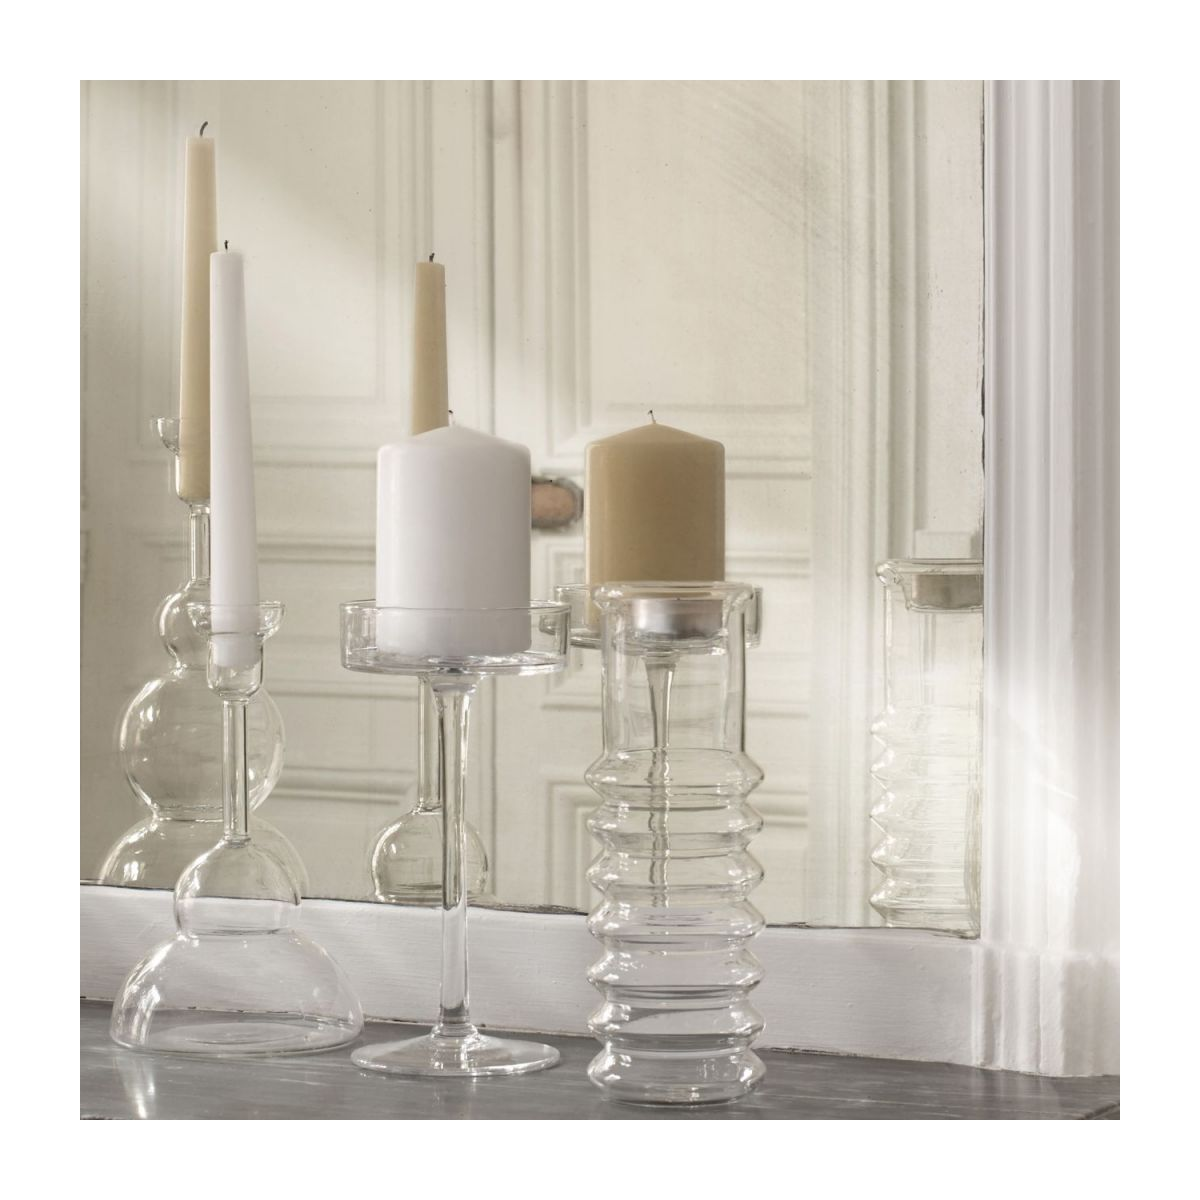 Large glass candlestick n°3